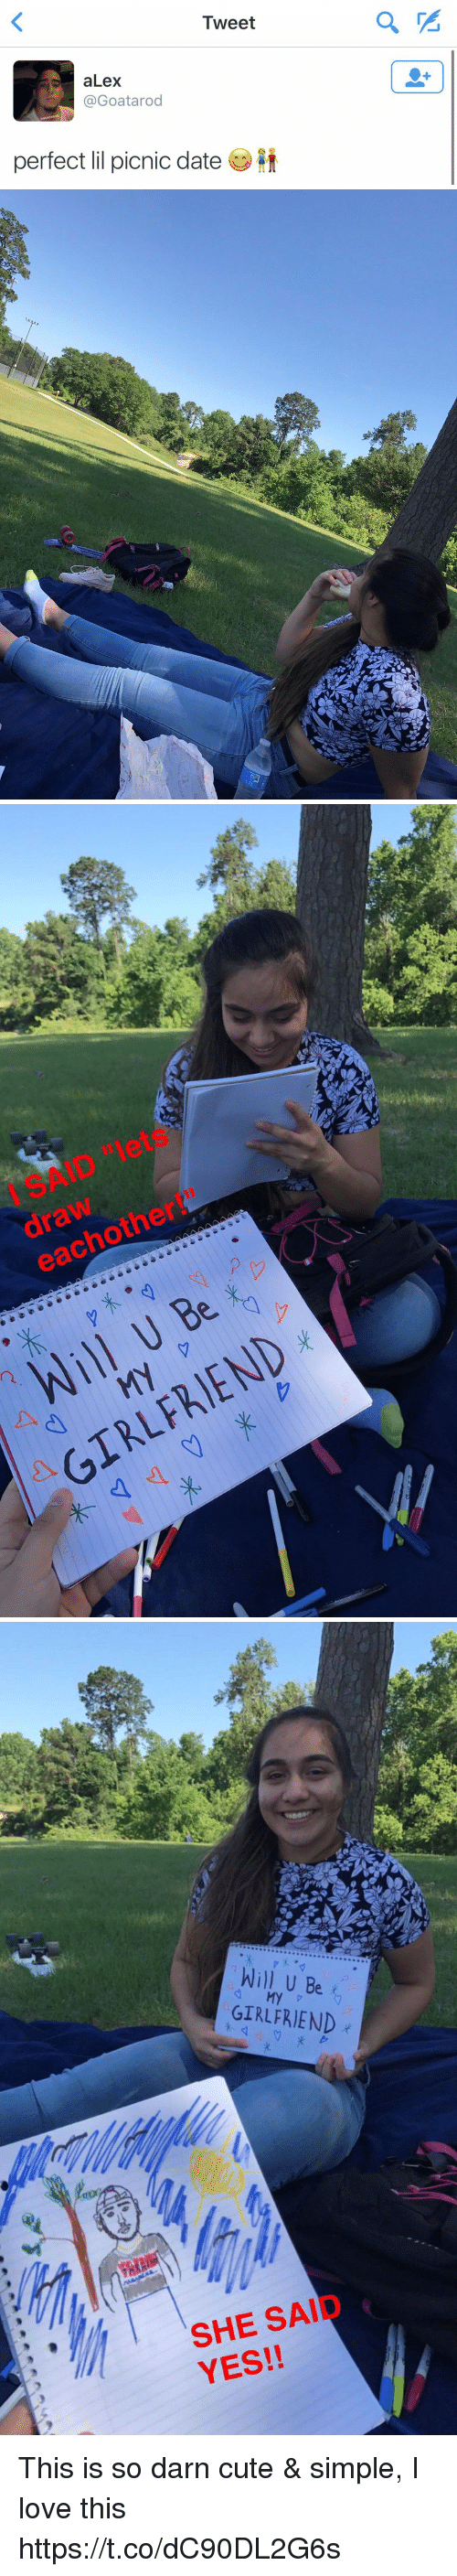 Tweet 2 Alex Perfect Lil Picnic Date I Said Lets Draw Eachother 2